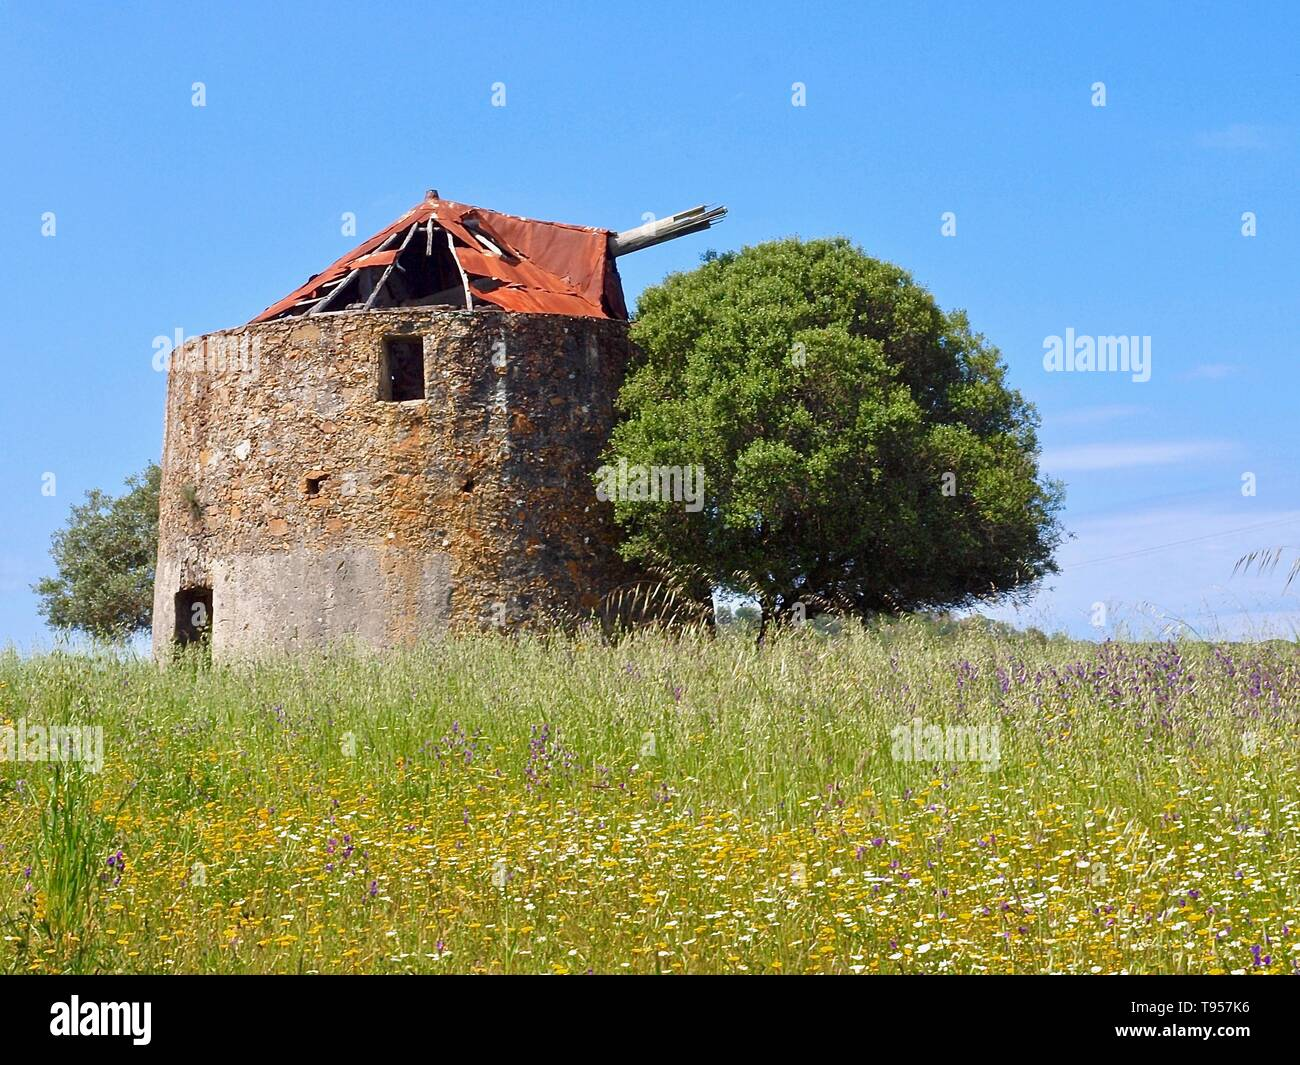 Old windmill with a tree on a meadow in Odeiceixe in Portugal - Stock Image